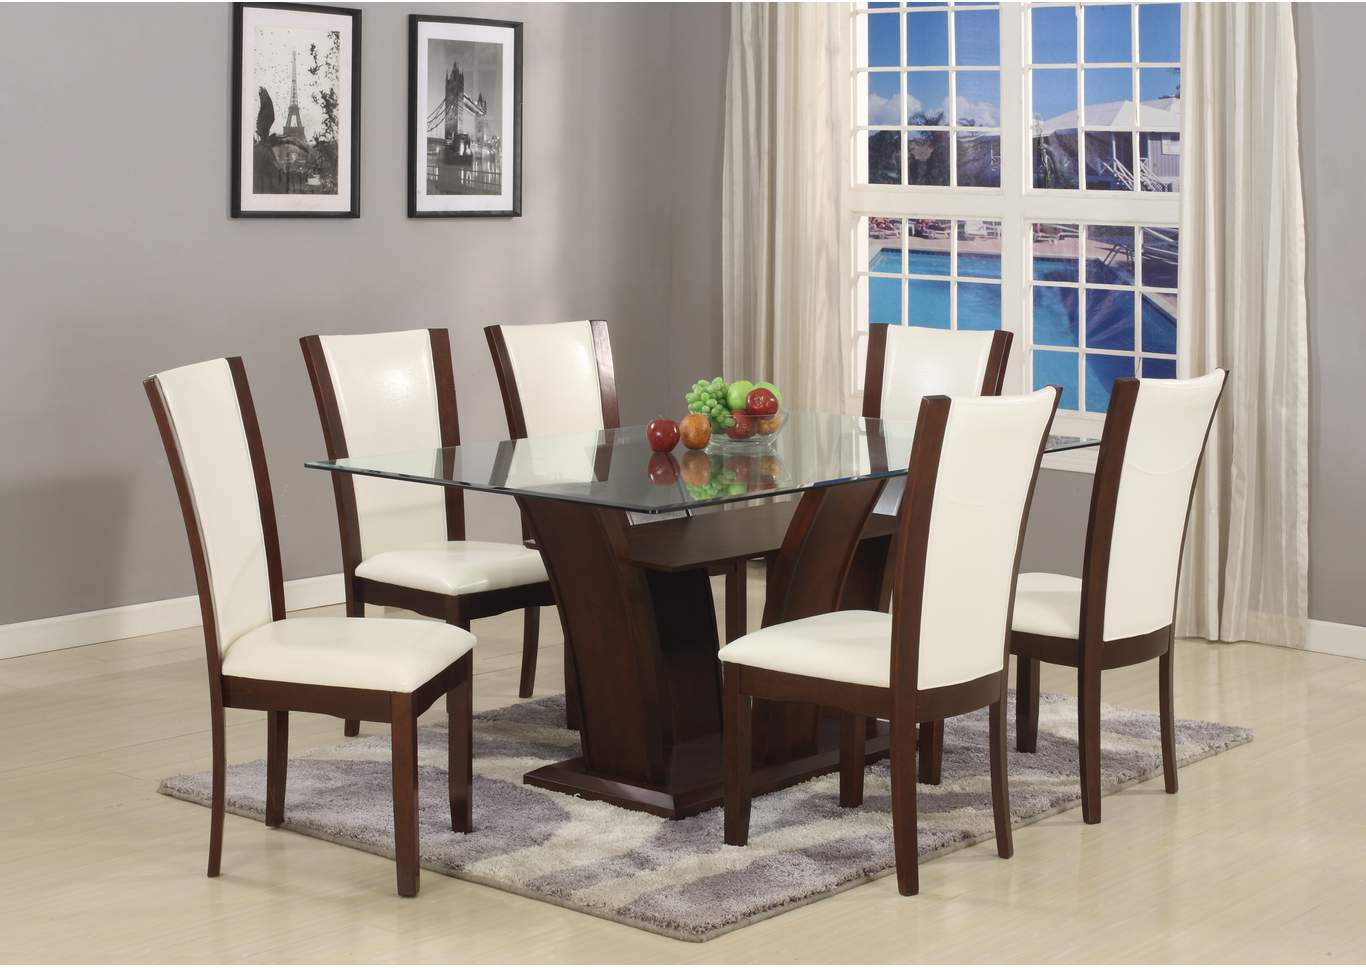 compass furniture camelia white glass rectangular dining room table w 4 side chairs. Black Bedroom Furniture Sets. Home Design Ideas